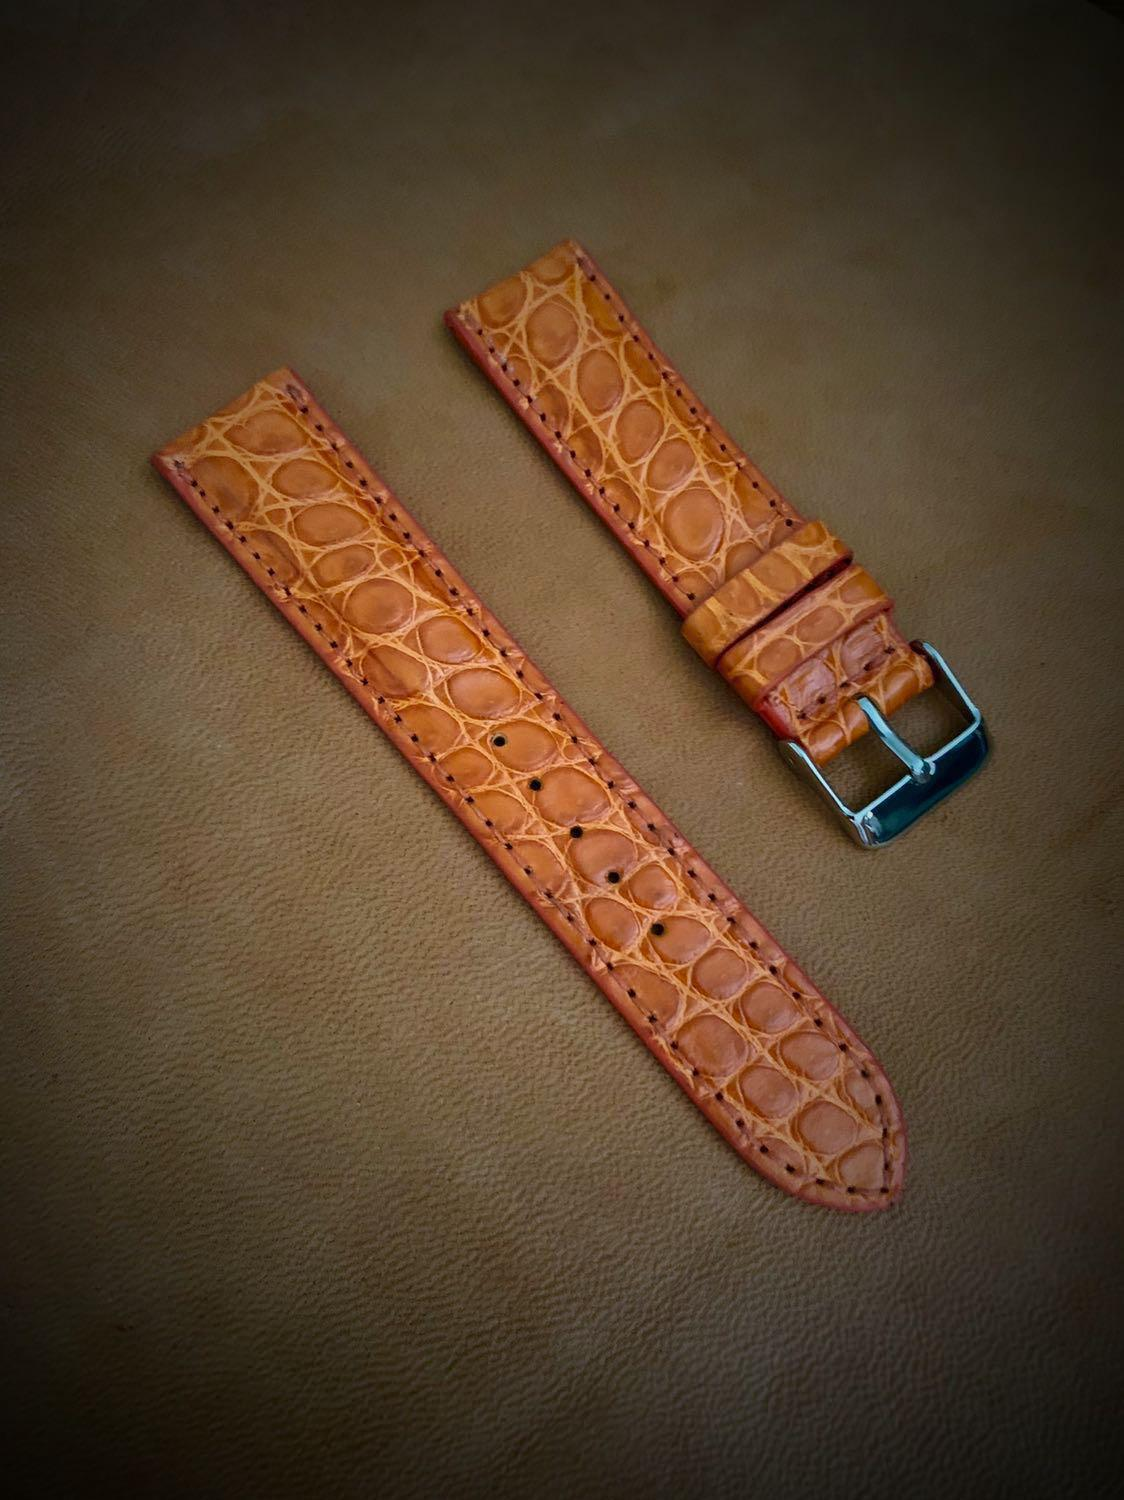 Auburn Orange Brown Oval Scales Crocodile Watch Strap - 20mm@lug/18mm@buckle (true to colour) #MRTHougang #MRTSerangoon #MRTSengkang #MRTPunggol #MRTRaffles  #MRTBedok #MRTTampines #MRTCCK #MRTJurongEast #MRTYishun